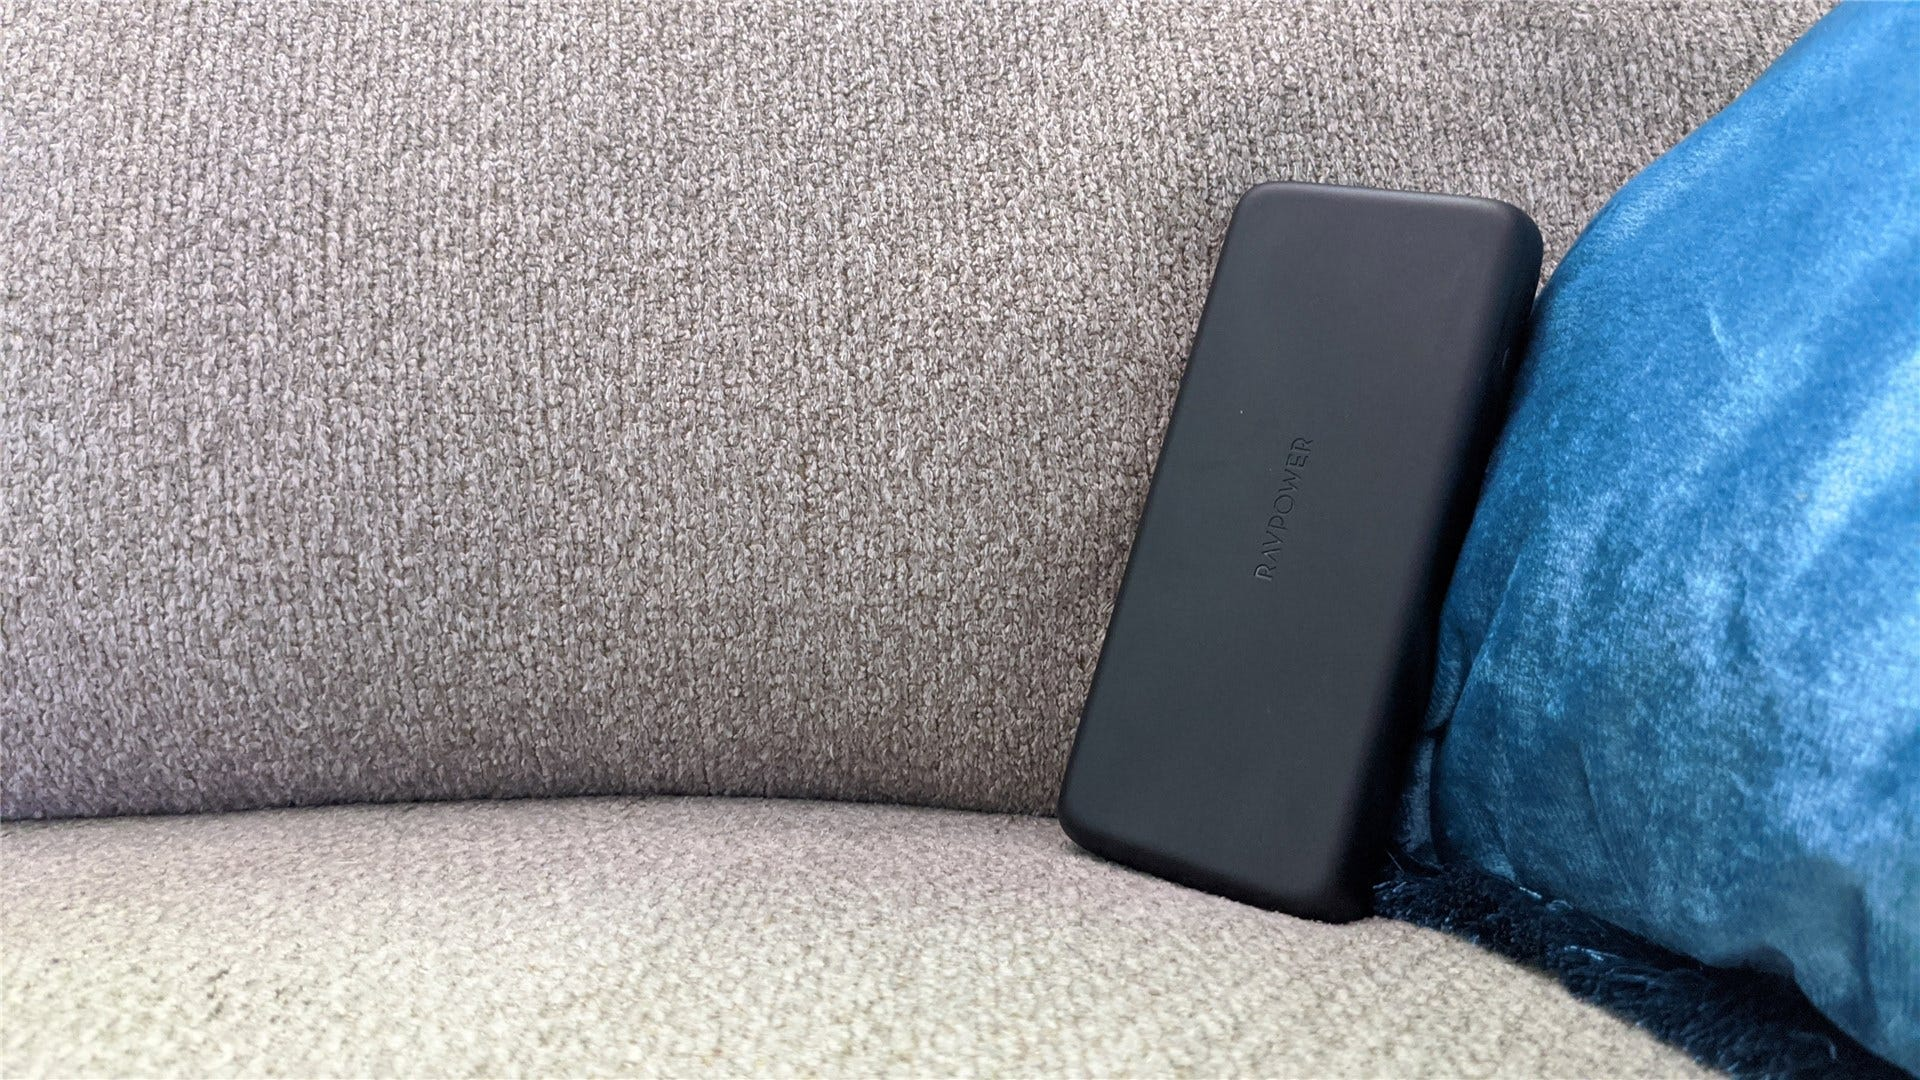 A RavPower battery on a tan couch with a teal pillow